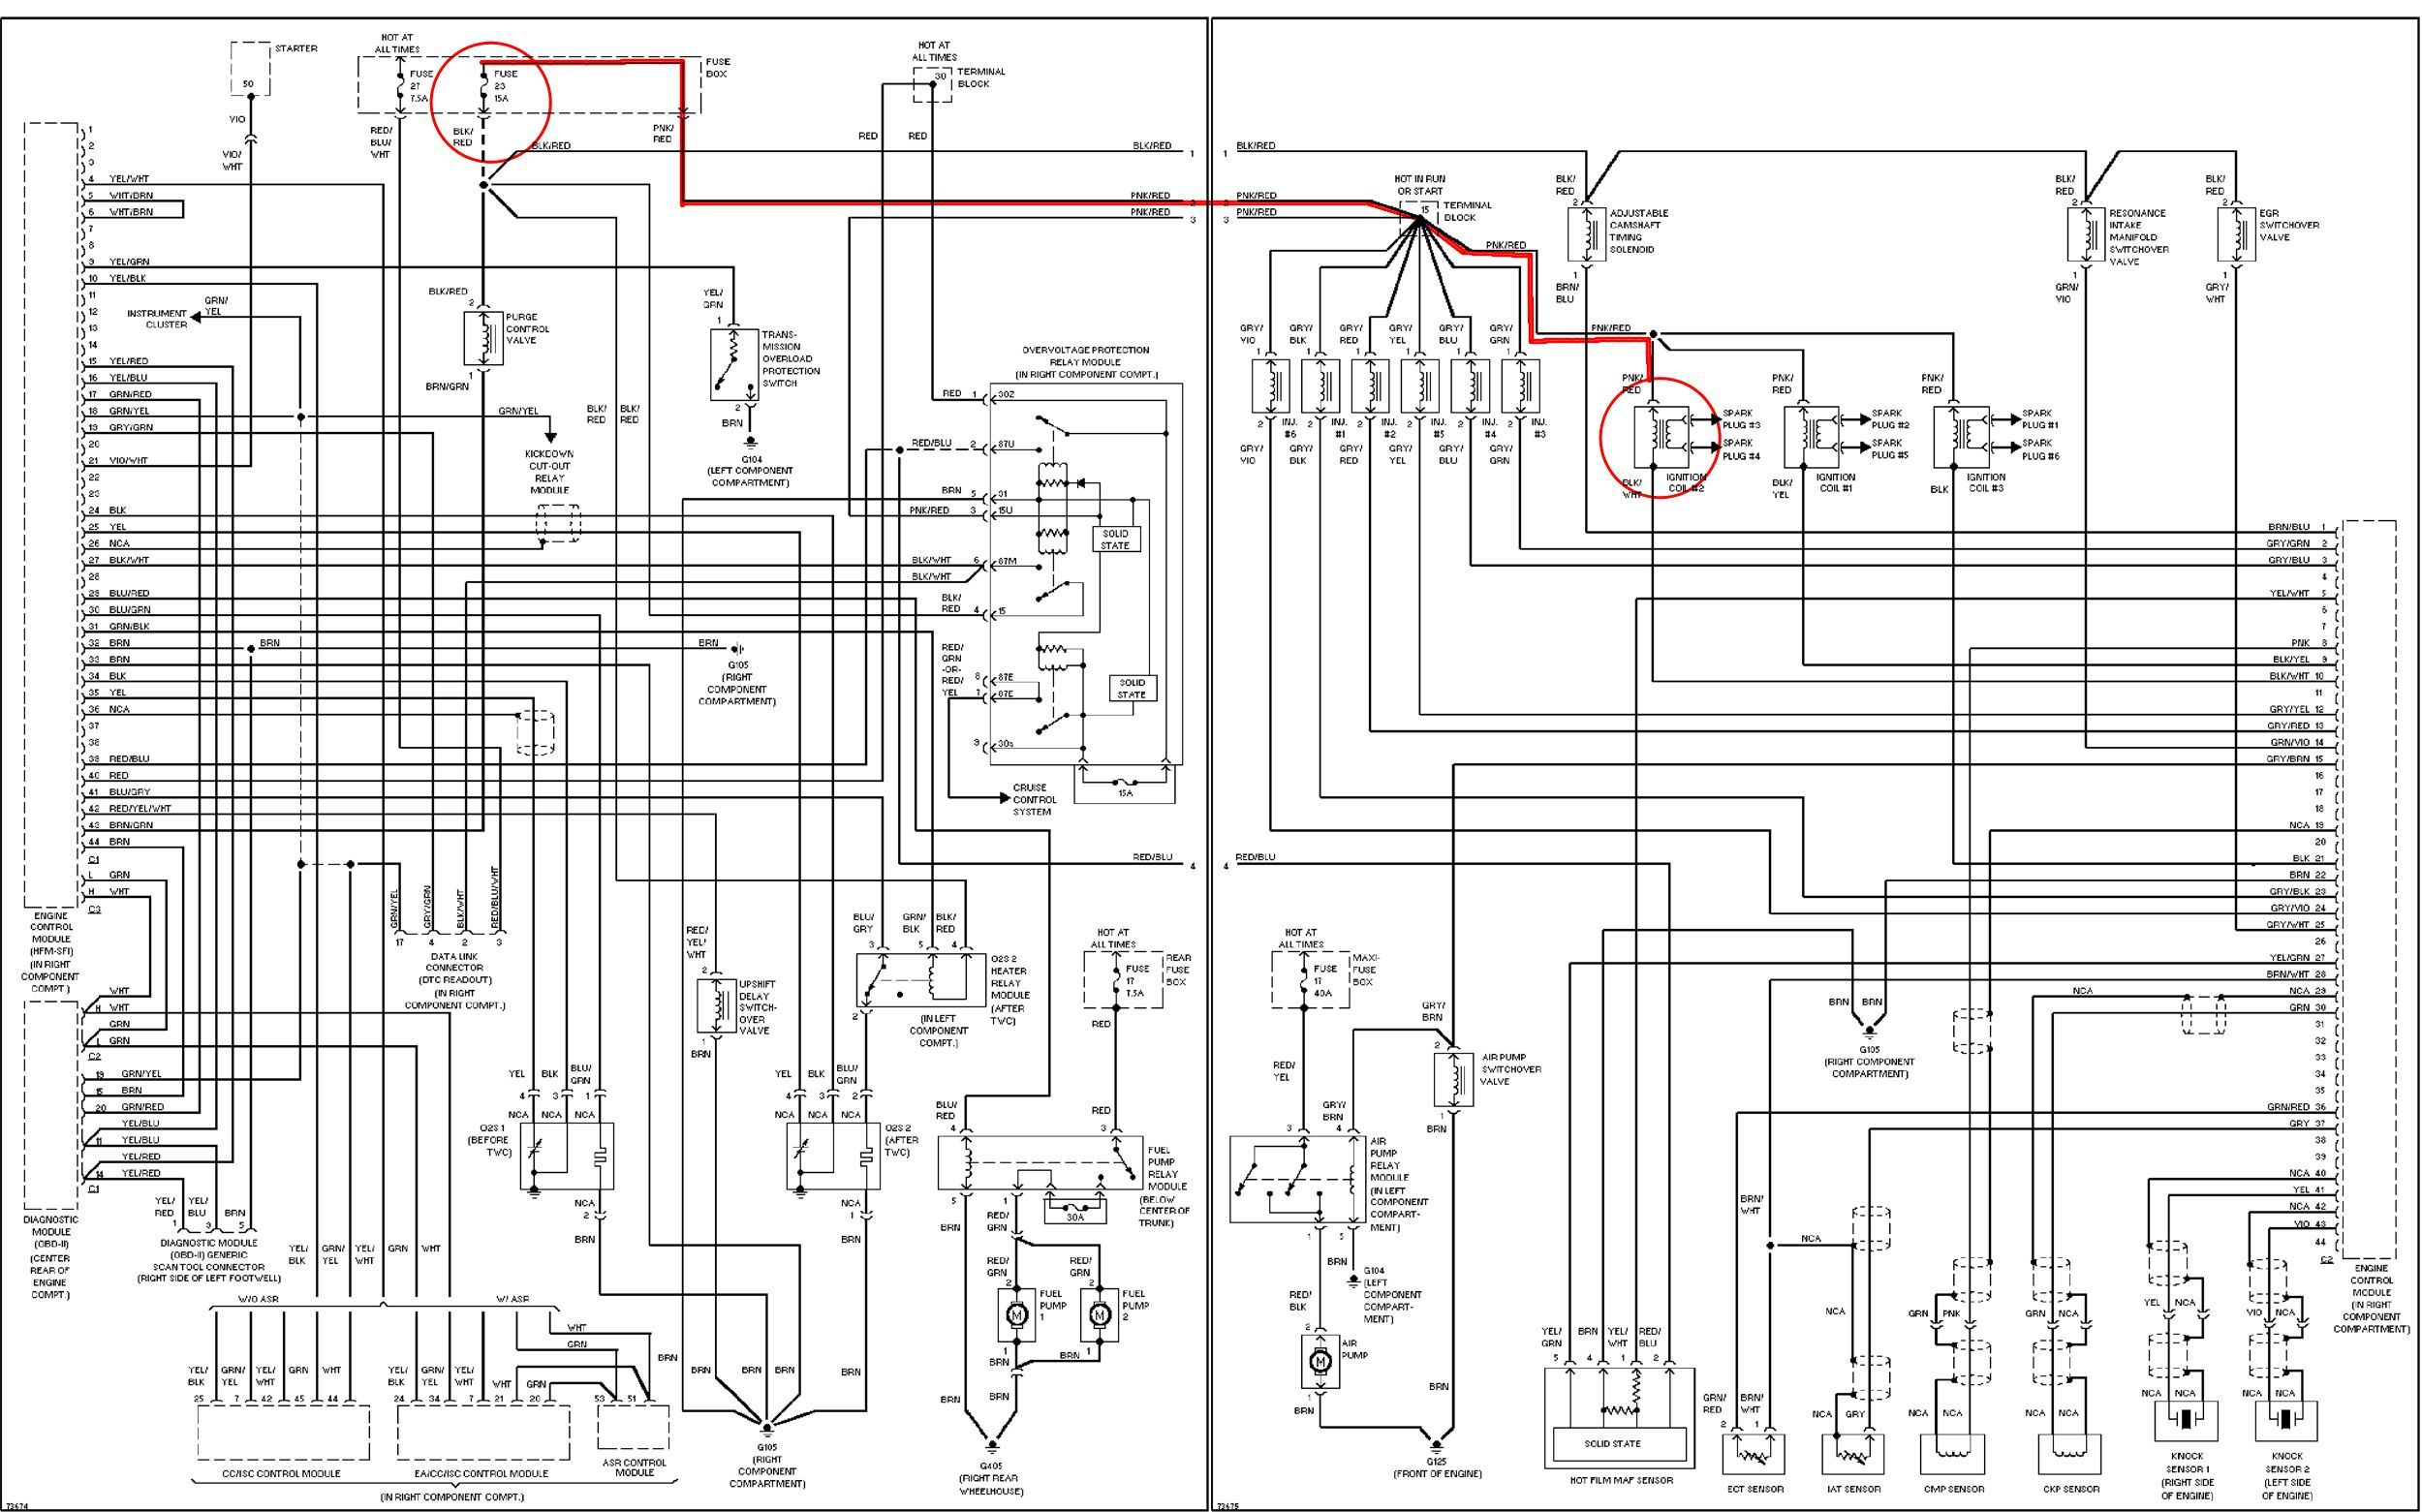 small resolution of k1blm to mercedes benz wiring diagram